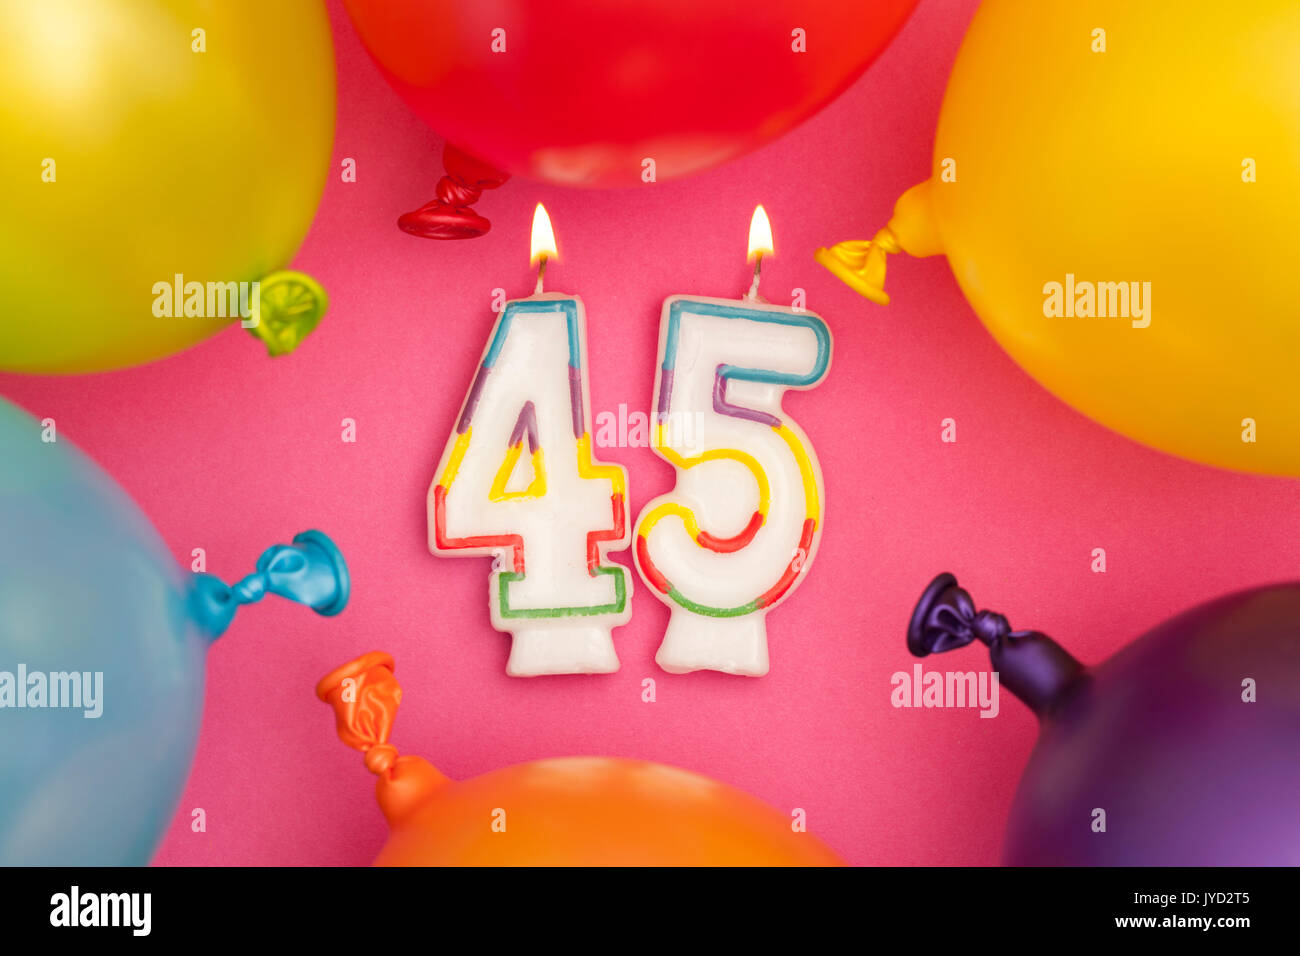 Happy Birthday Number 45 Celebration Candle With Colorful Balloons